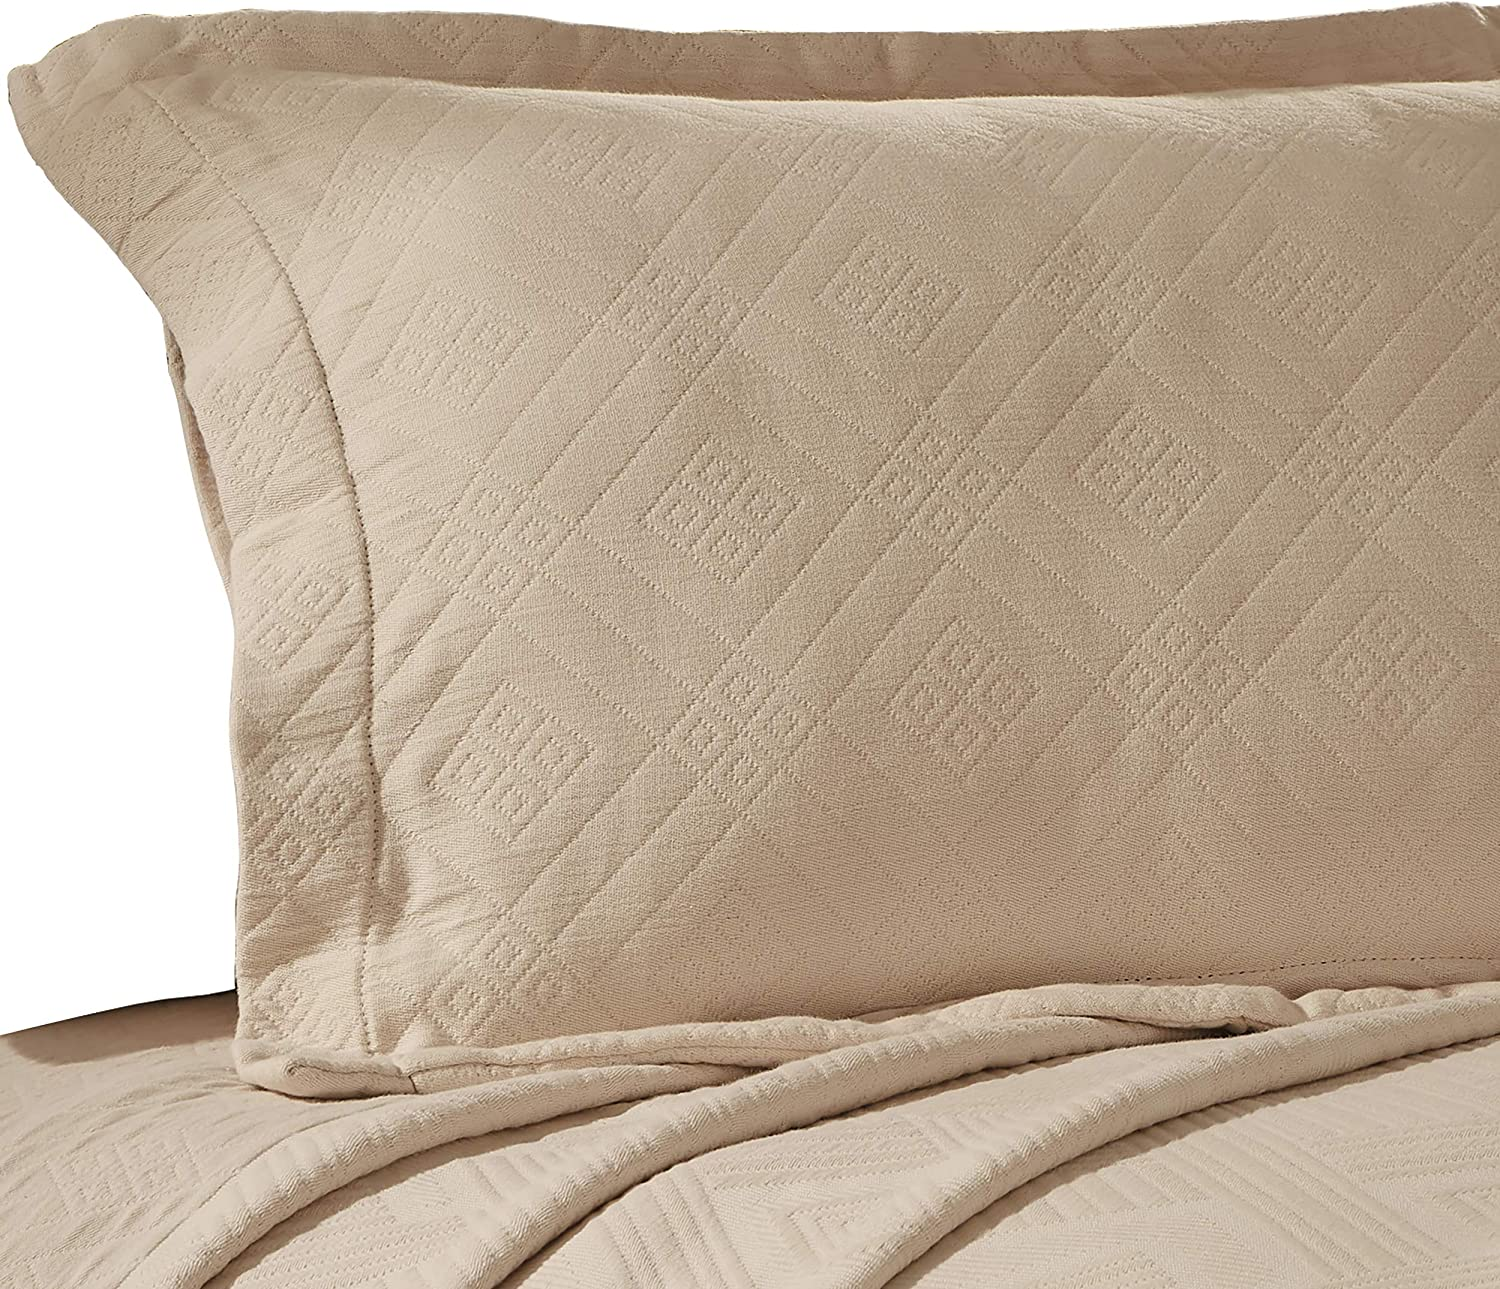 SUPERIOR Geometric Weekly update Fret Bedspread with Pillow Qu Sacramento Mall Matching Shams